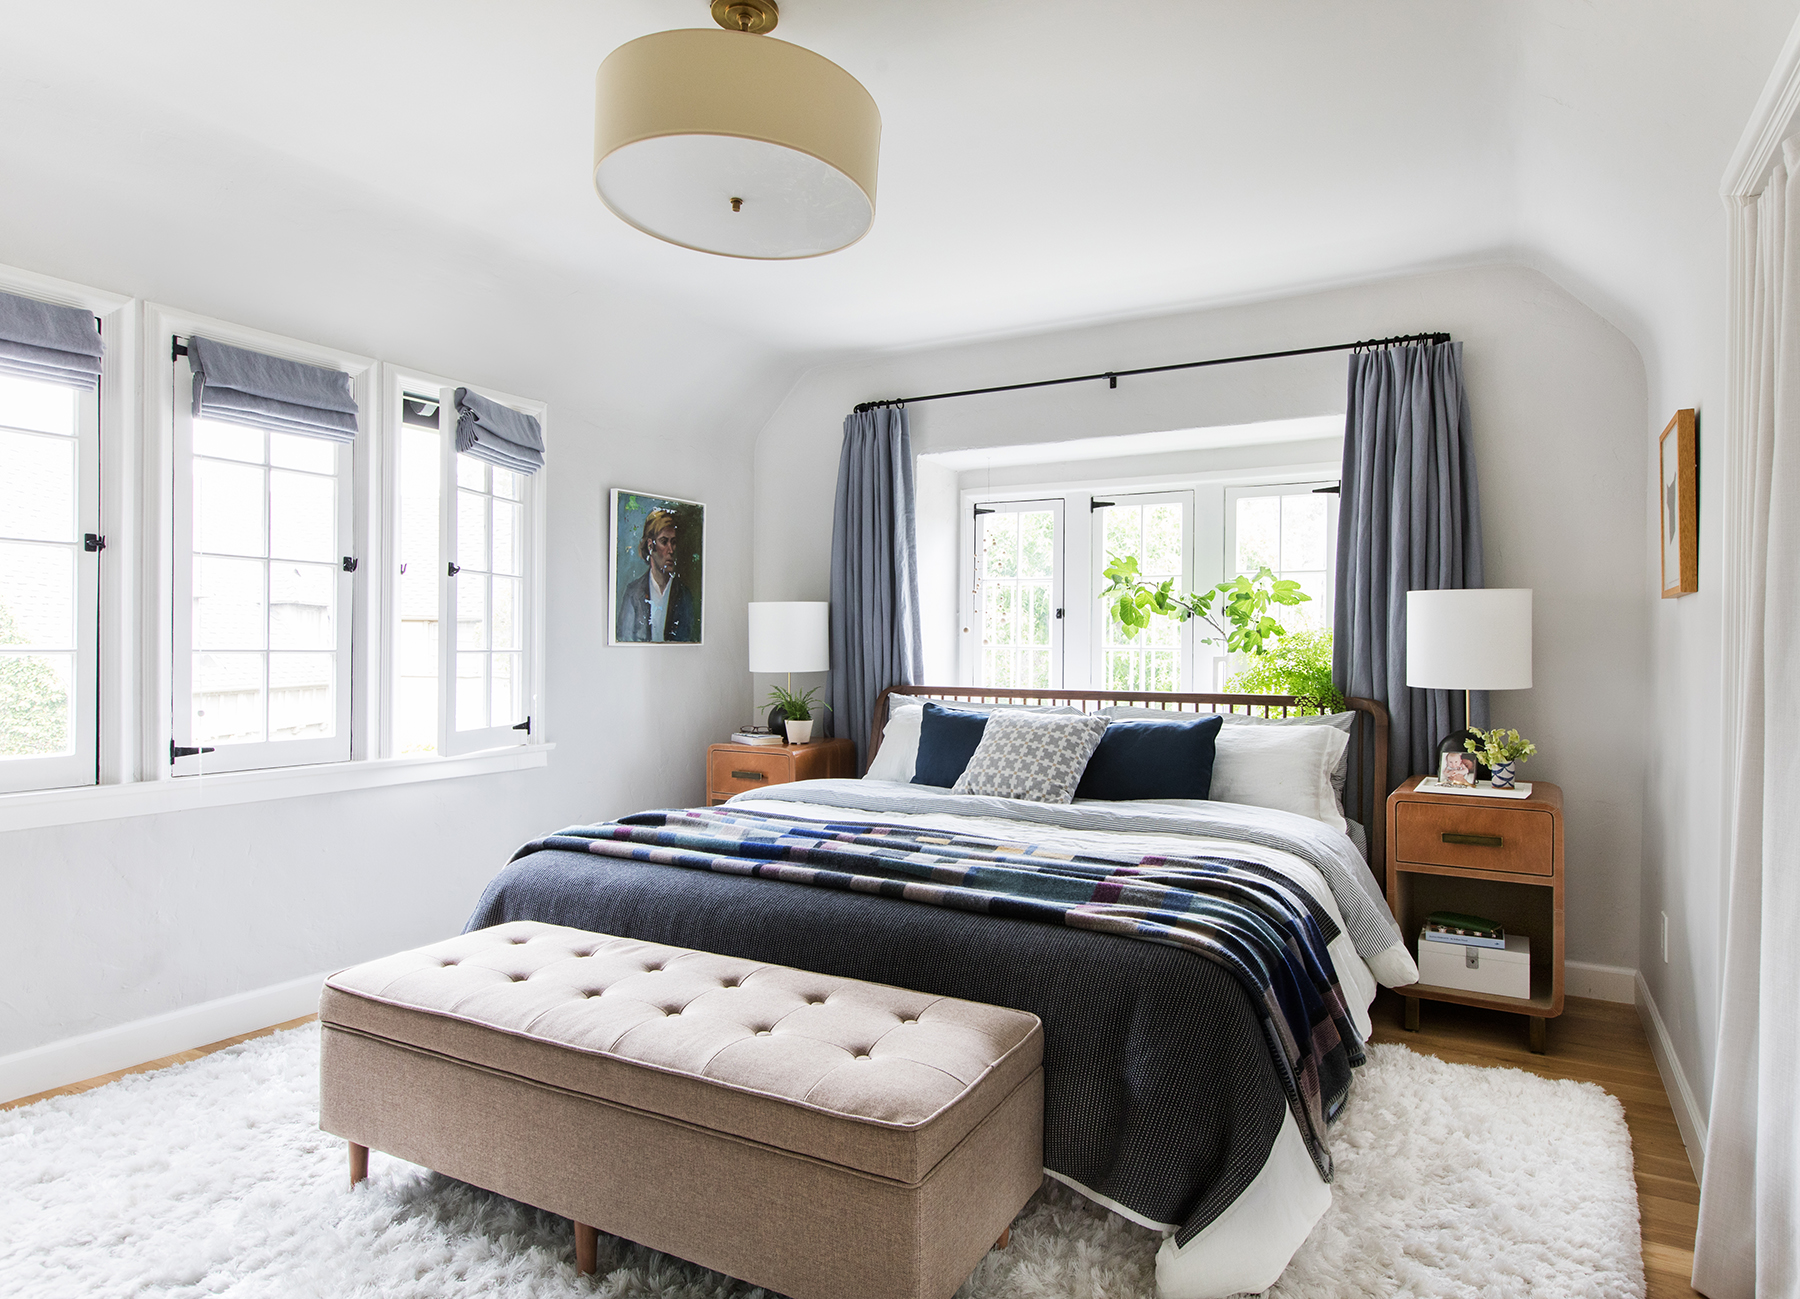 Tour emily henderson s new los angeles house real simple for The master bedroom tessa hadley